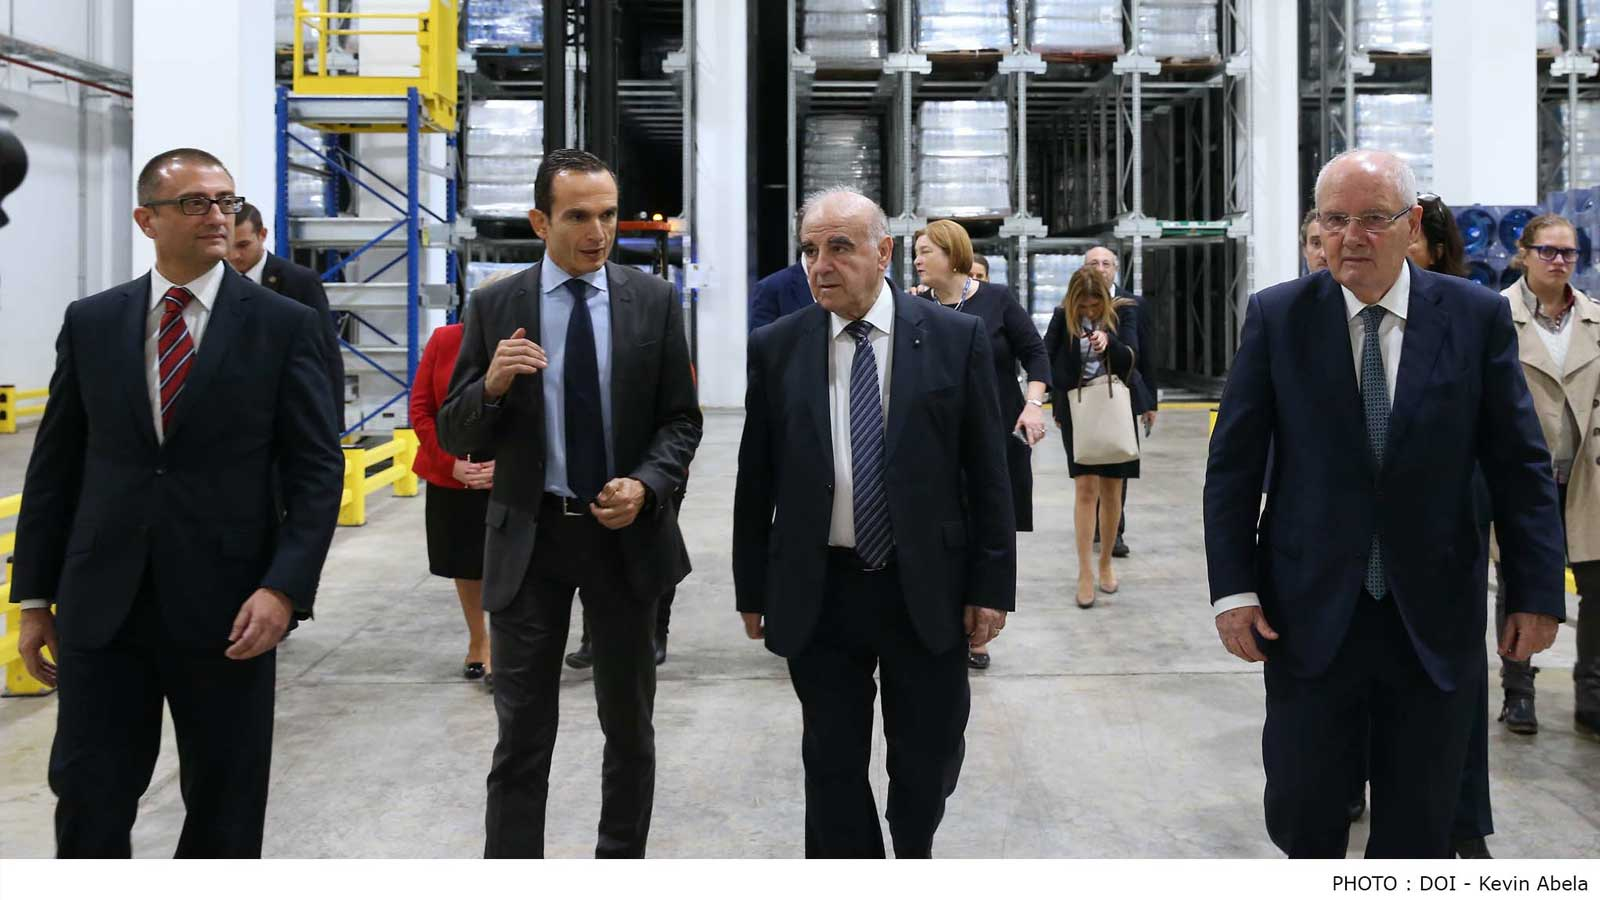 HE The President of Malta and Mrs Vella visit Farsons Brewery